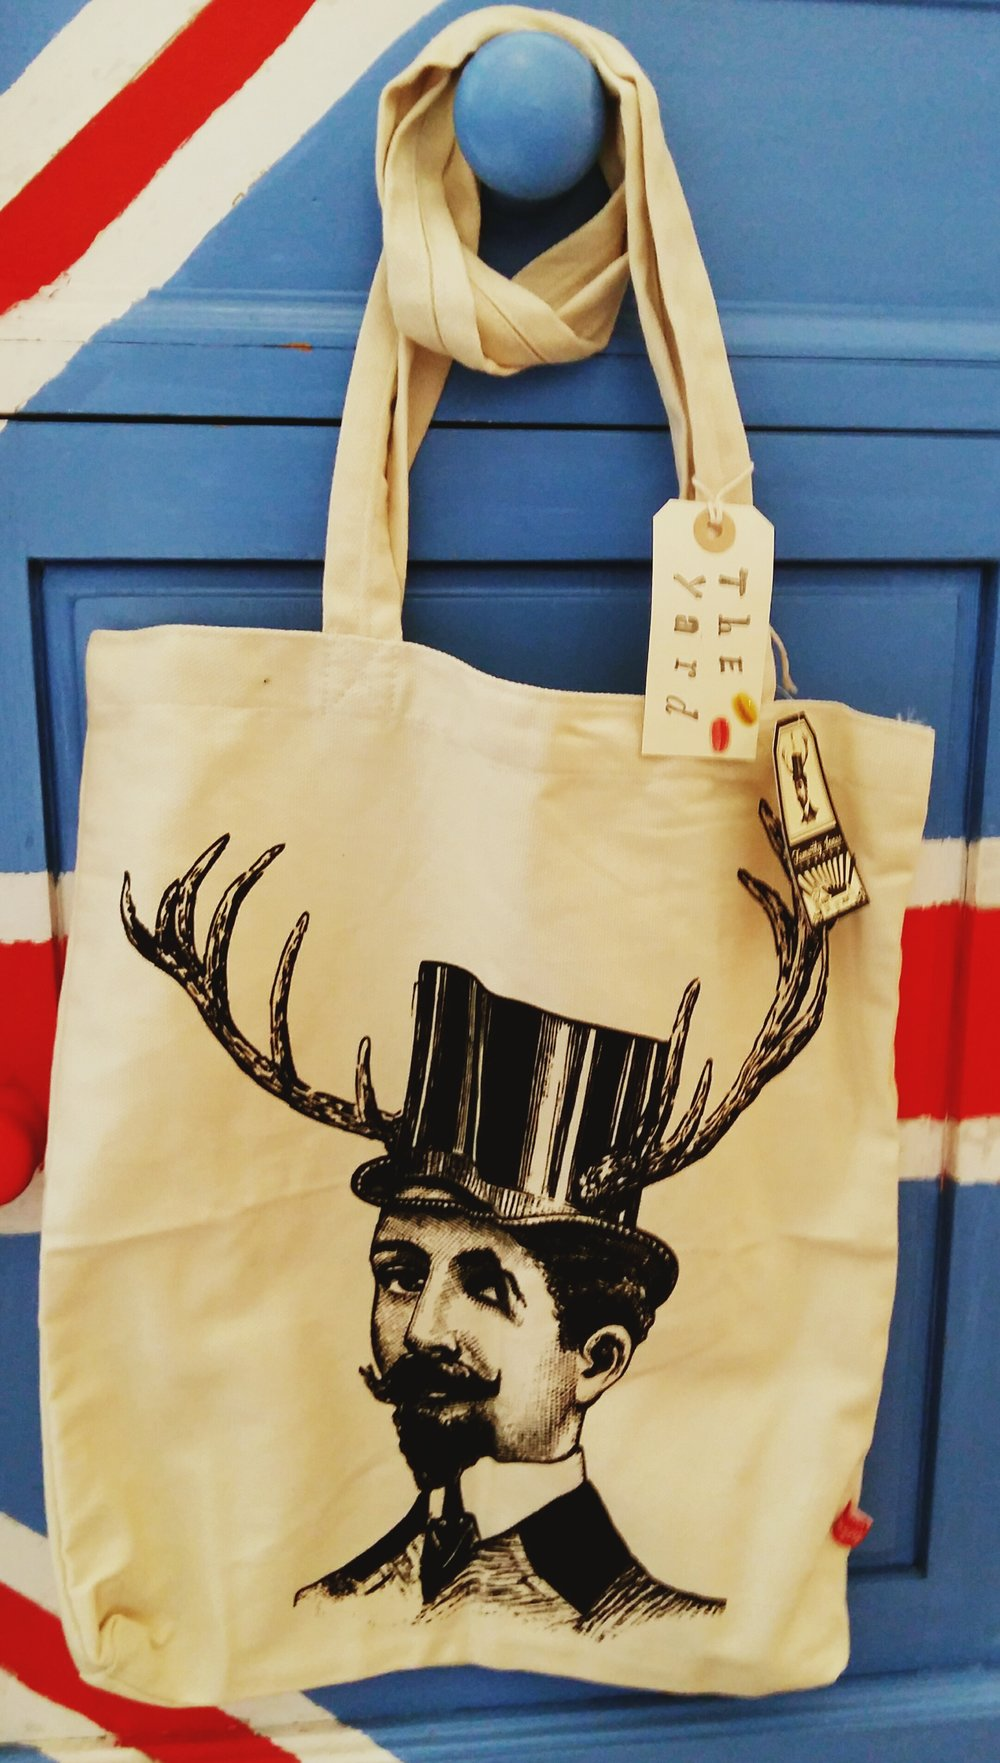 Alternative to a stocking this handsome tote bag is £5